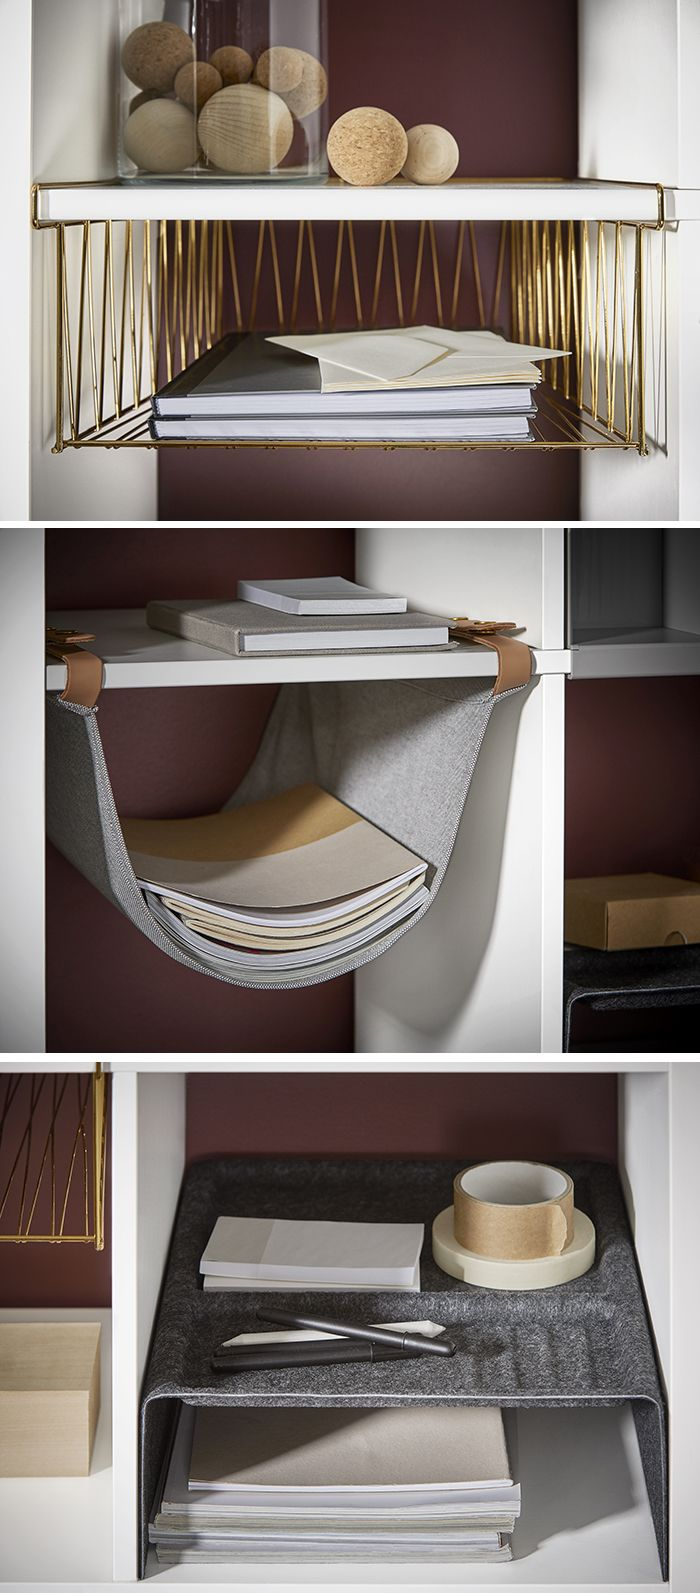 Ikea Kallax - five new accessories so you can add style and more functionality